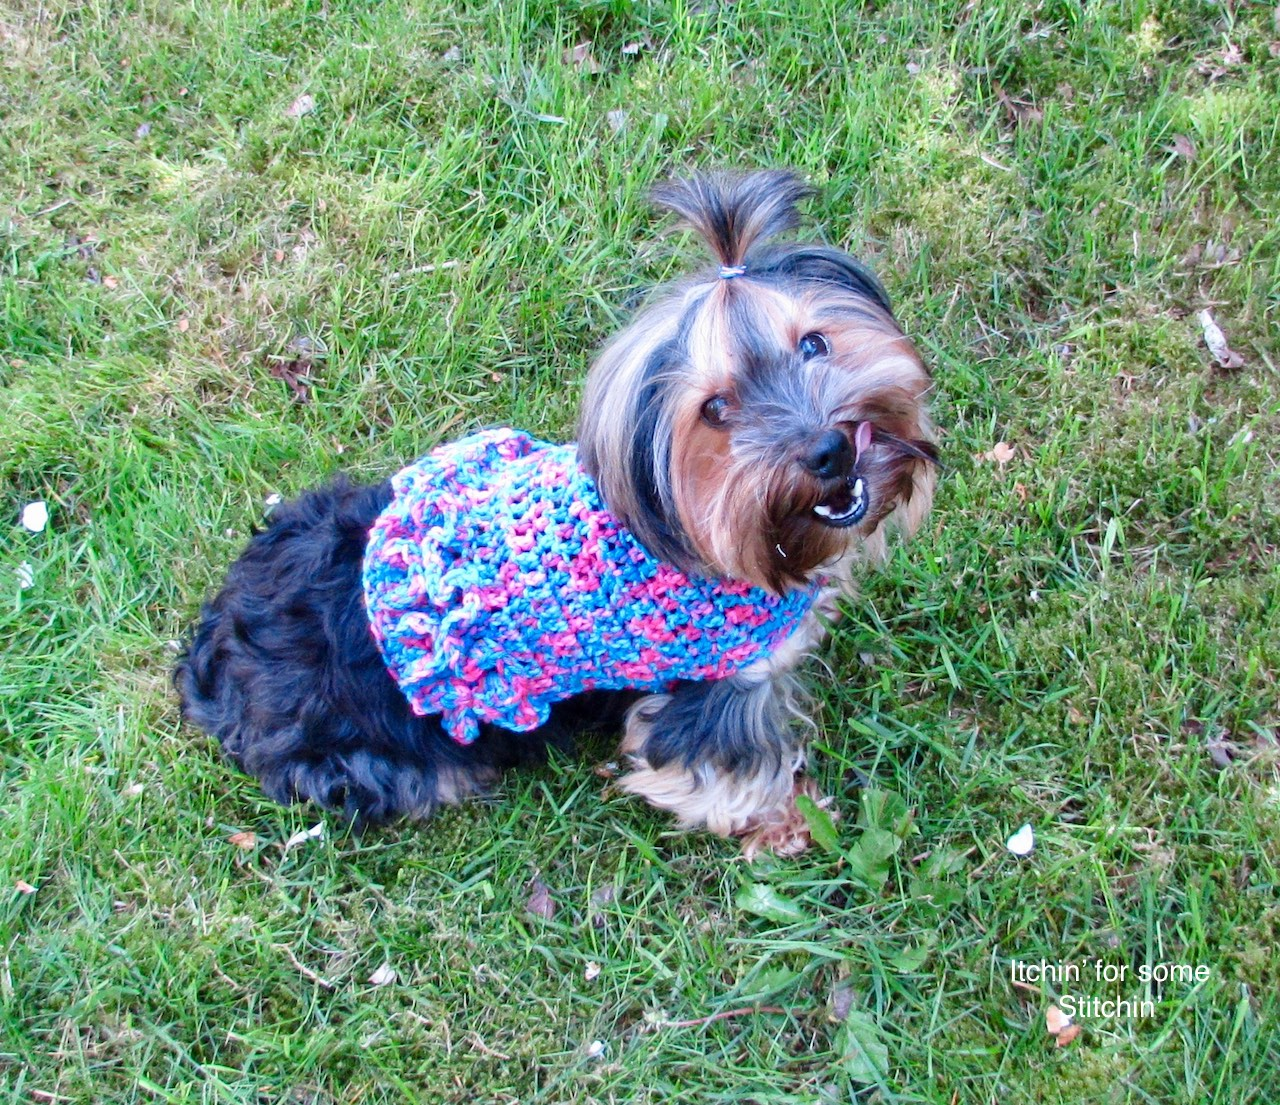 How To Crochet A Dog Sweater With Ruffles Itchin For Some Stitchin